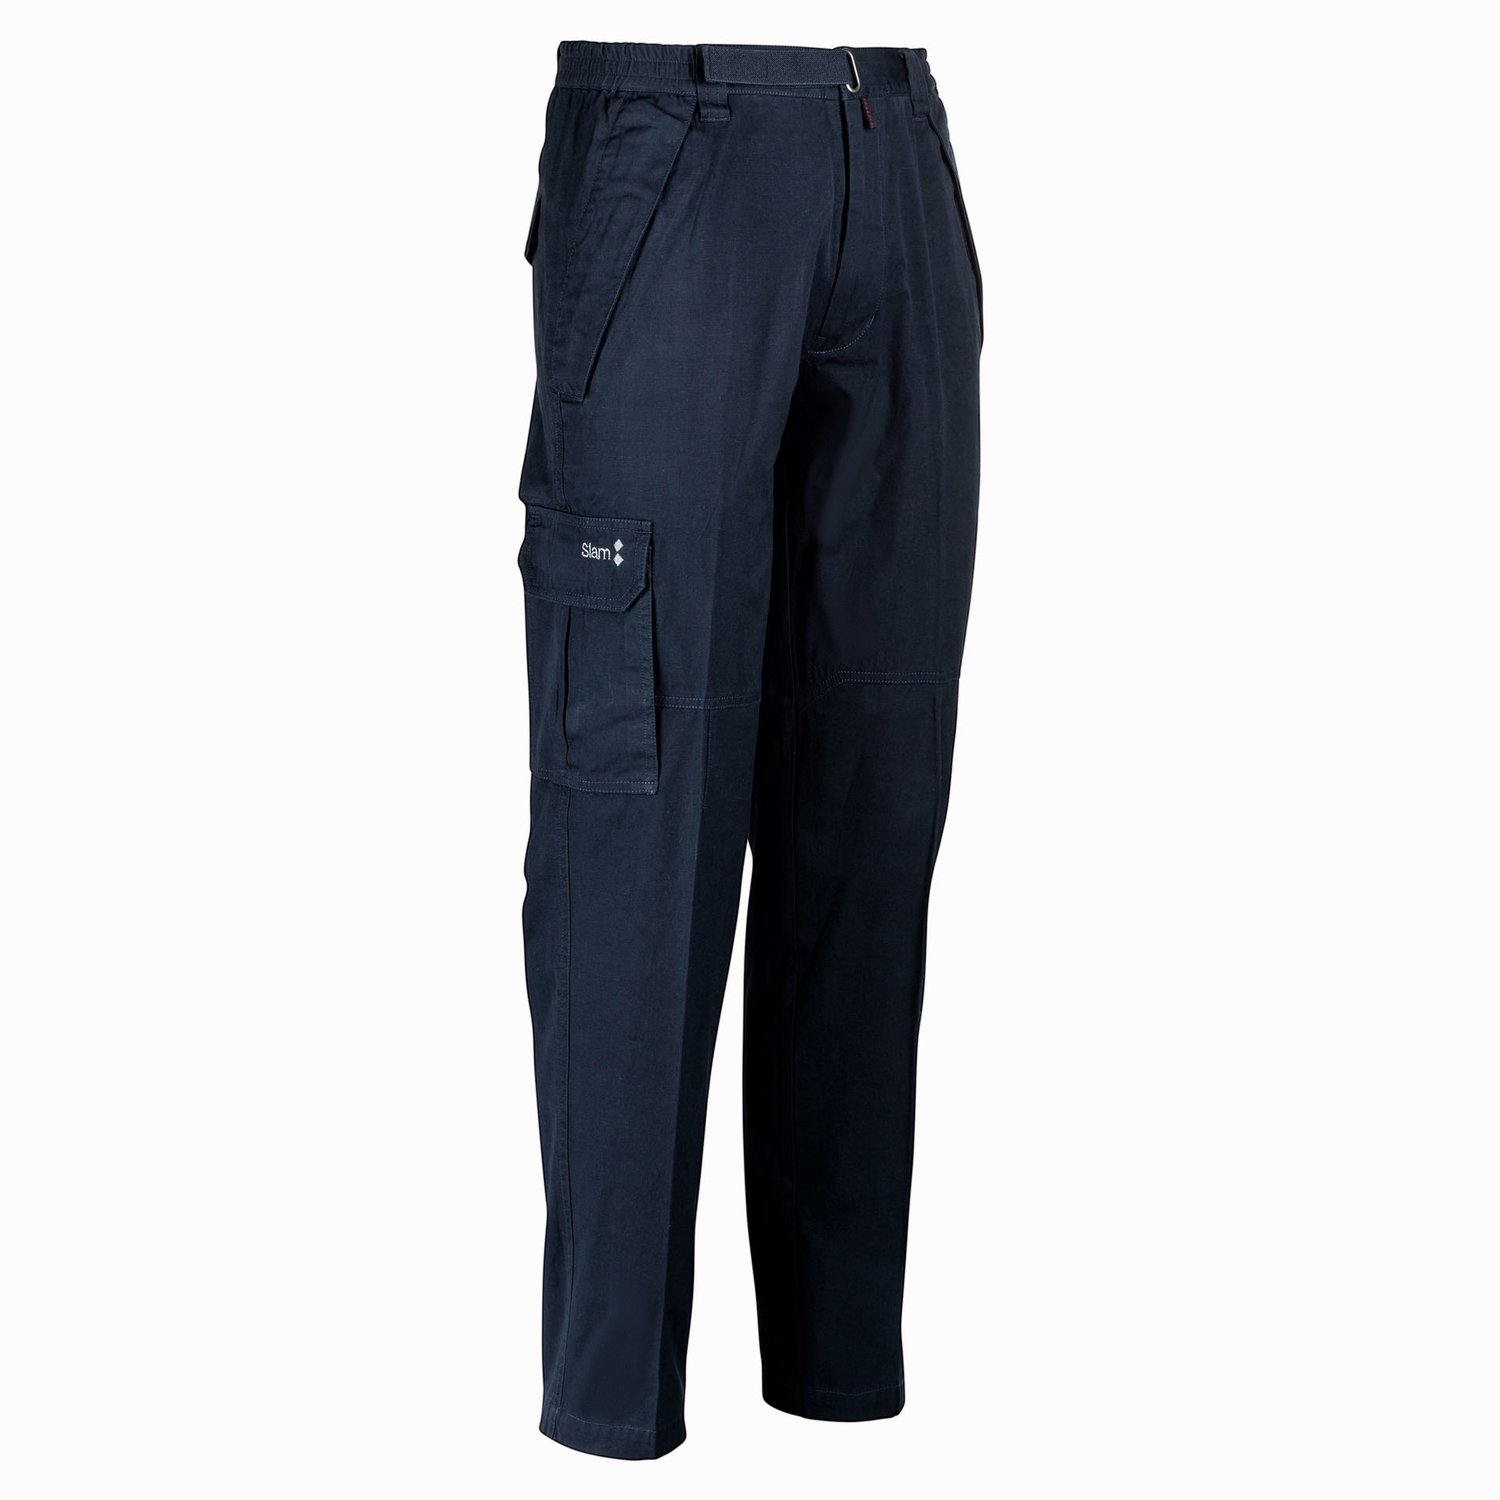 Sailing pants 2.1 - Navy